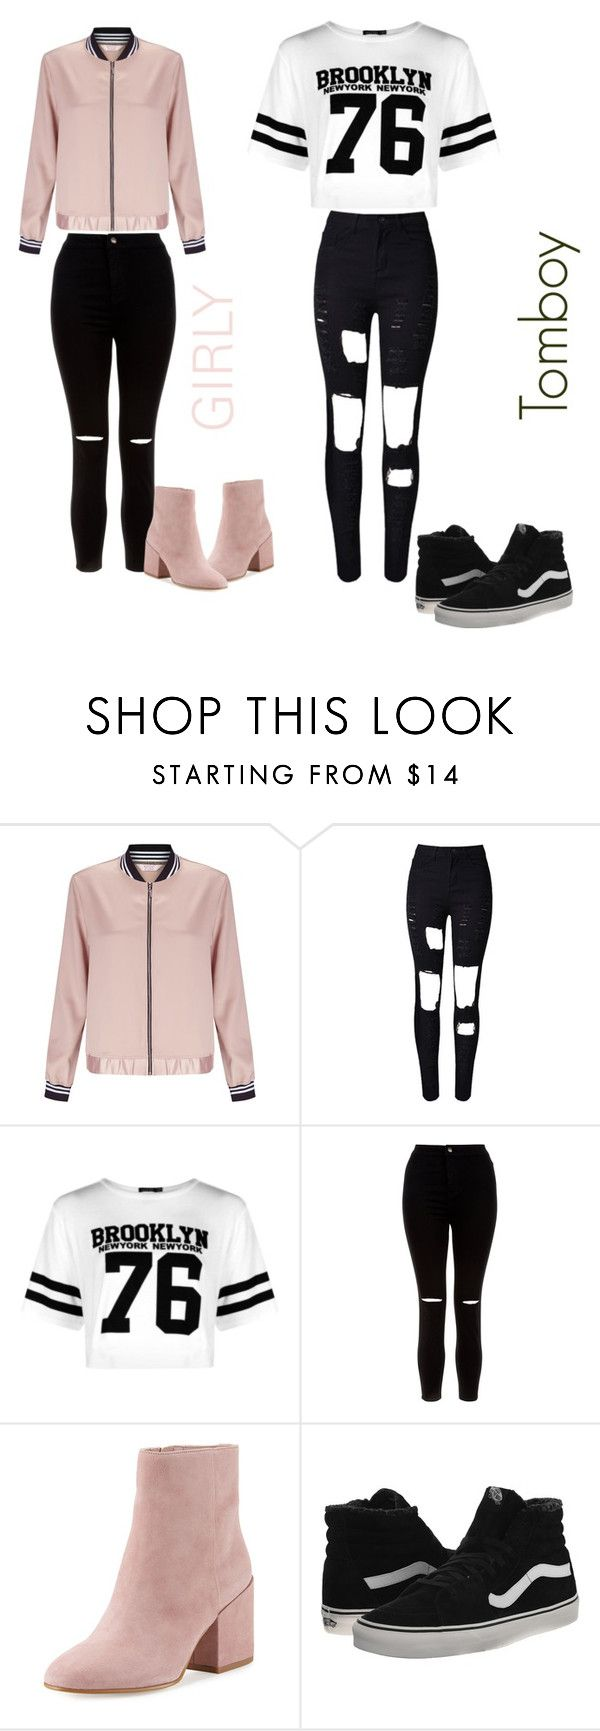 """girly vs tomboy"" by fashionkweeen ❤ liked on Polyvore featuring Miss Selfridge, WithChic, Boohoo, New Look, Sam Edelman and Vans"